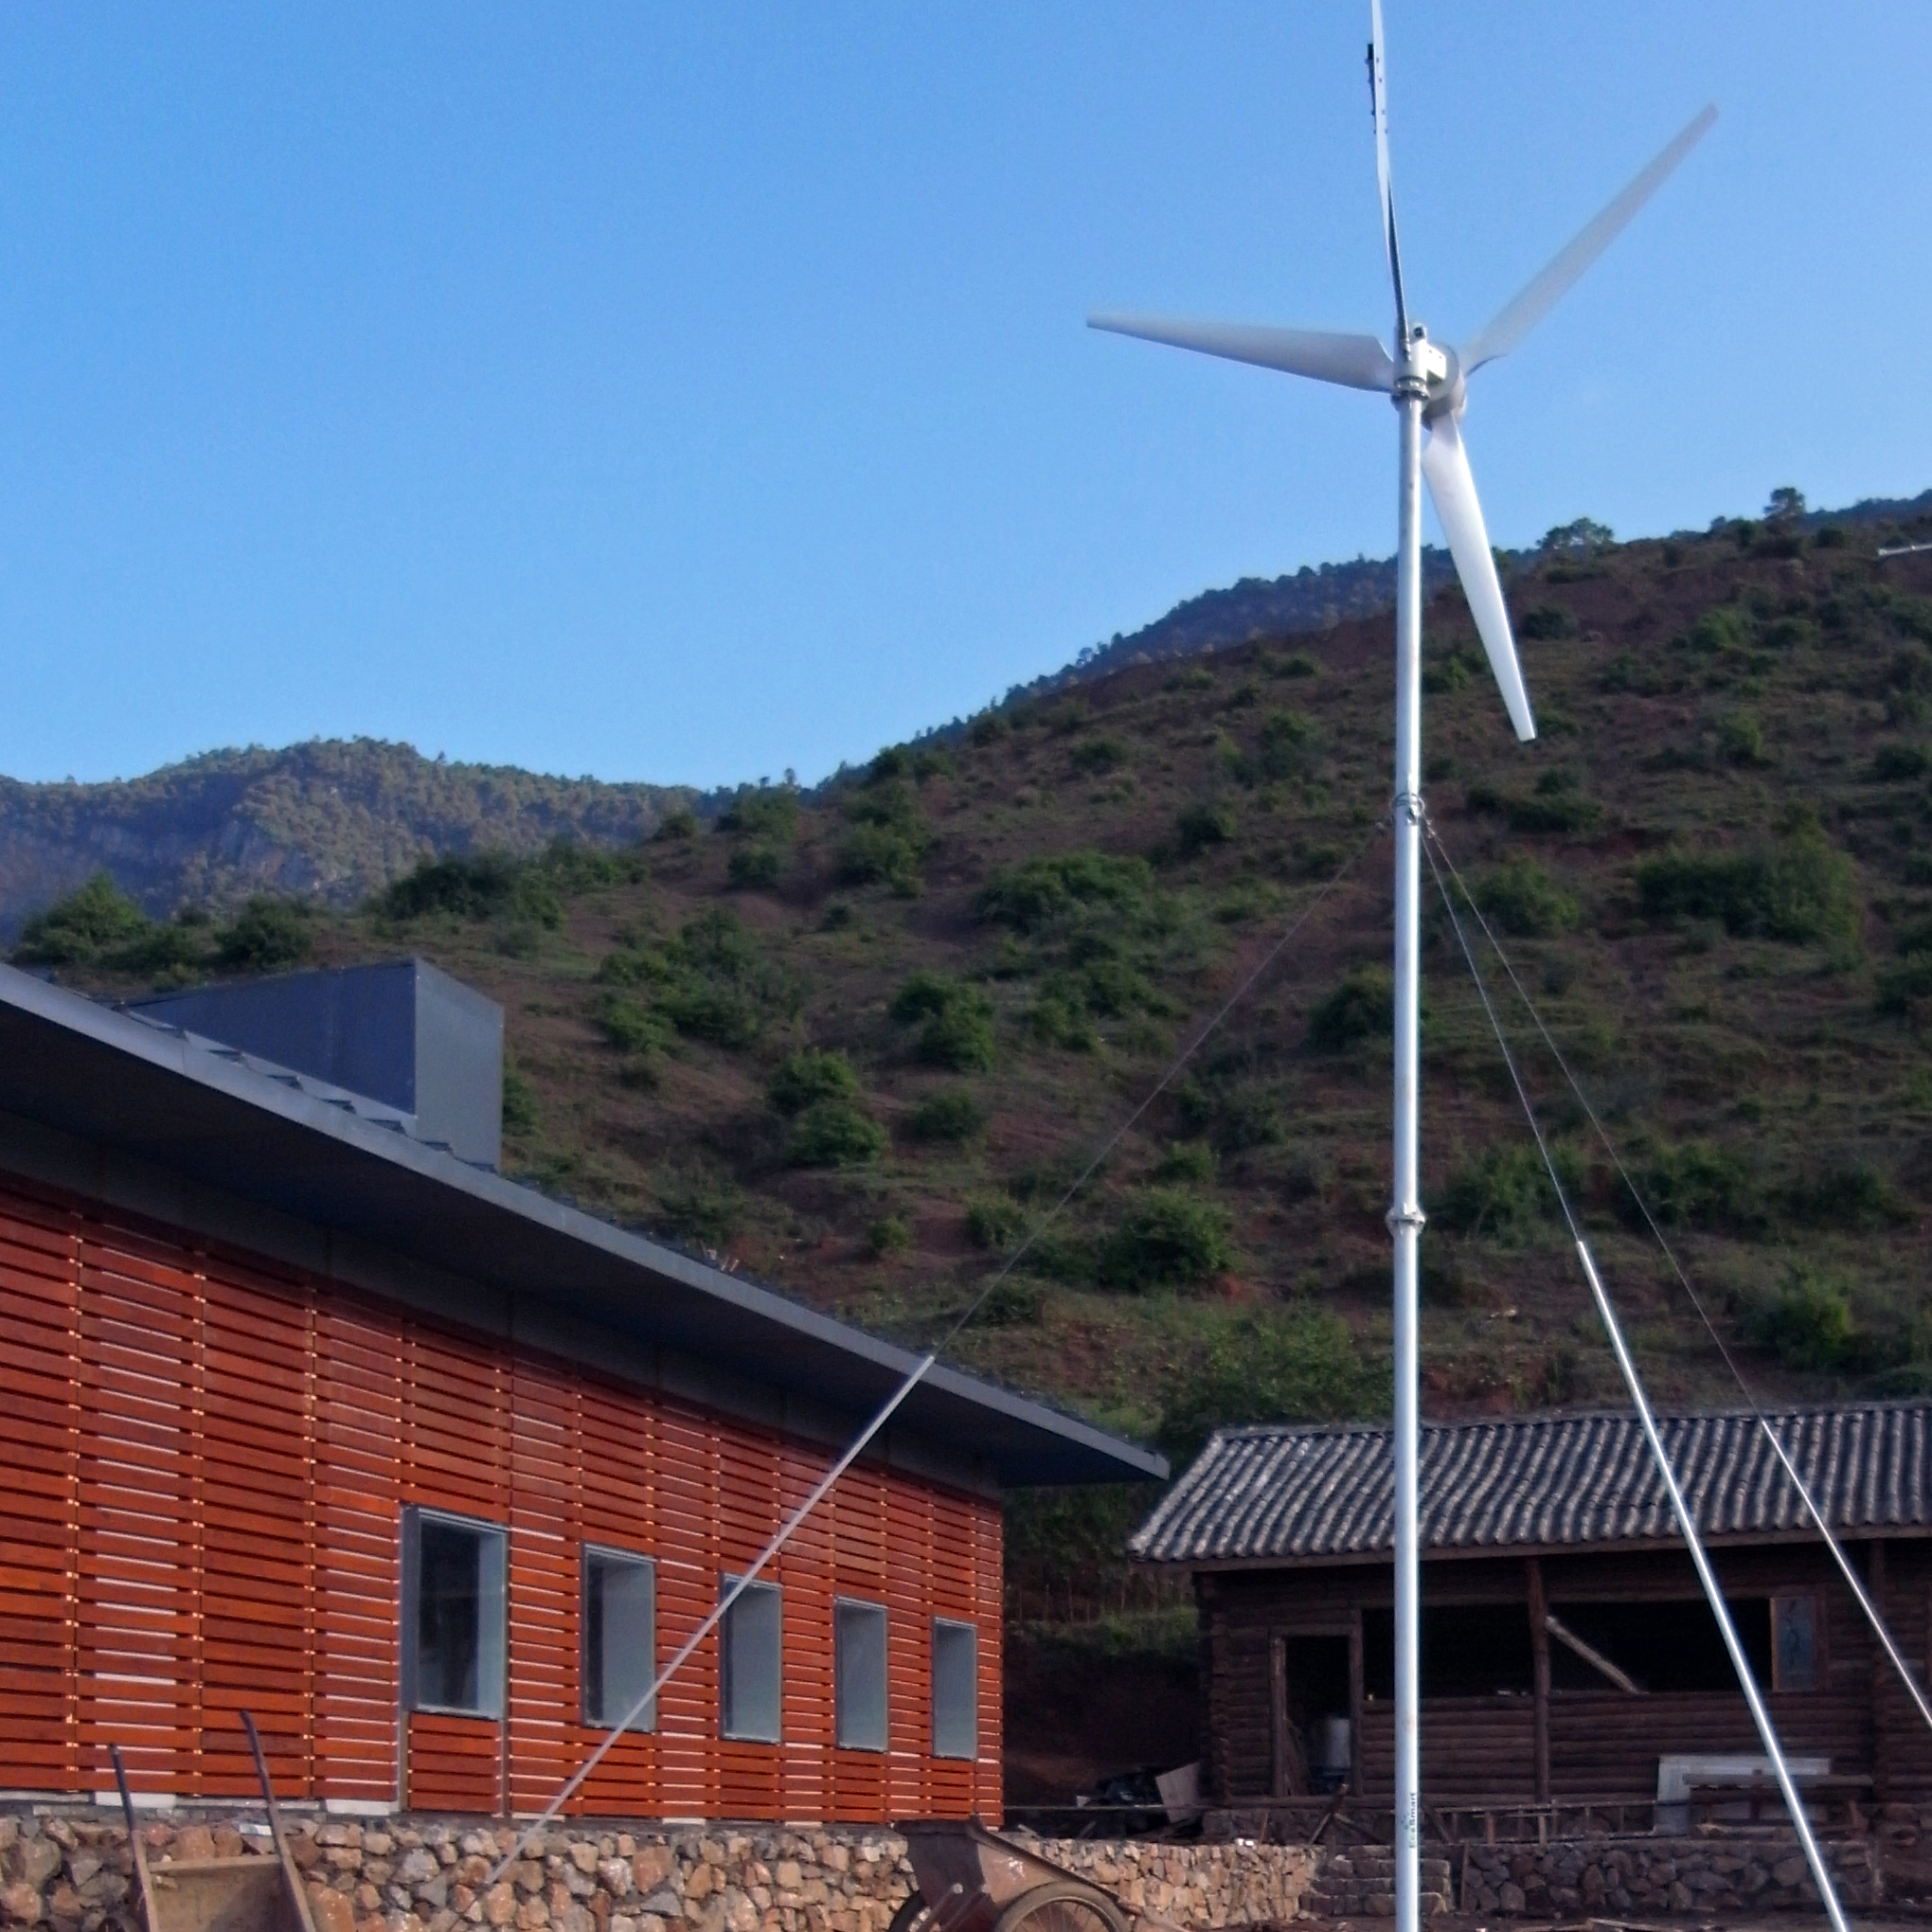 A wind turbine is used to provide clean energy for lighting